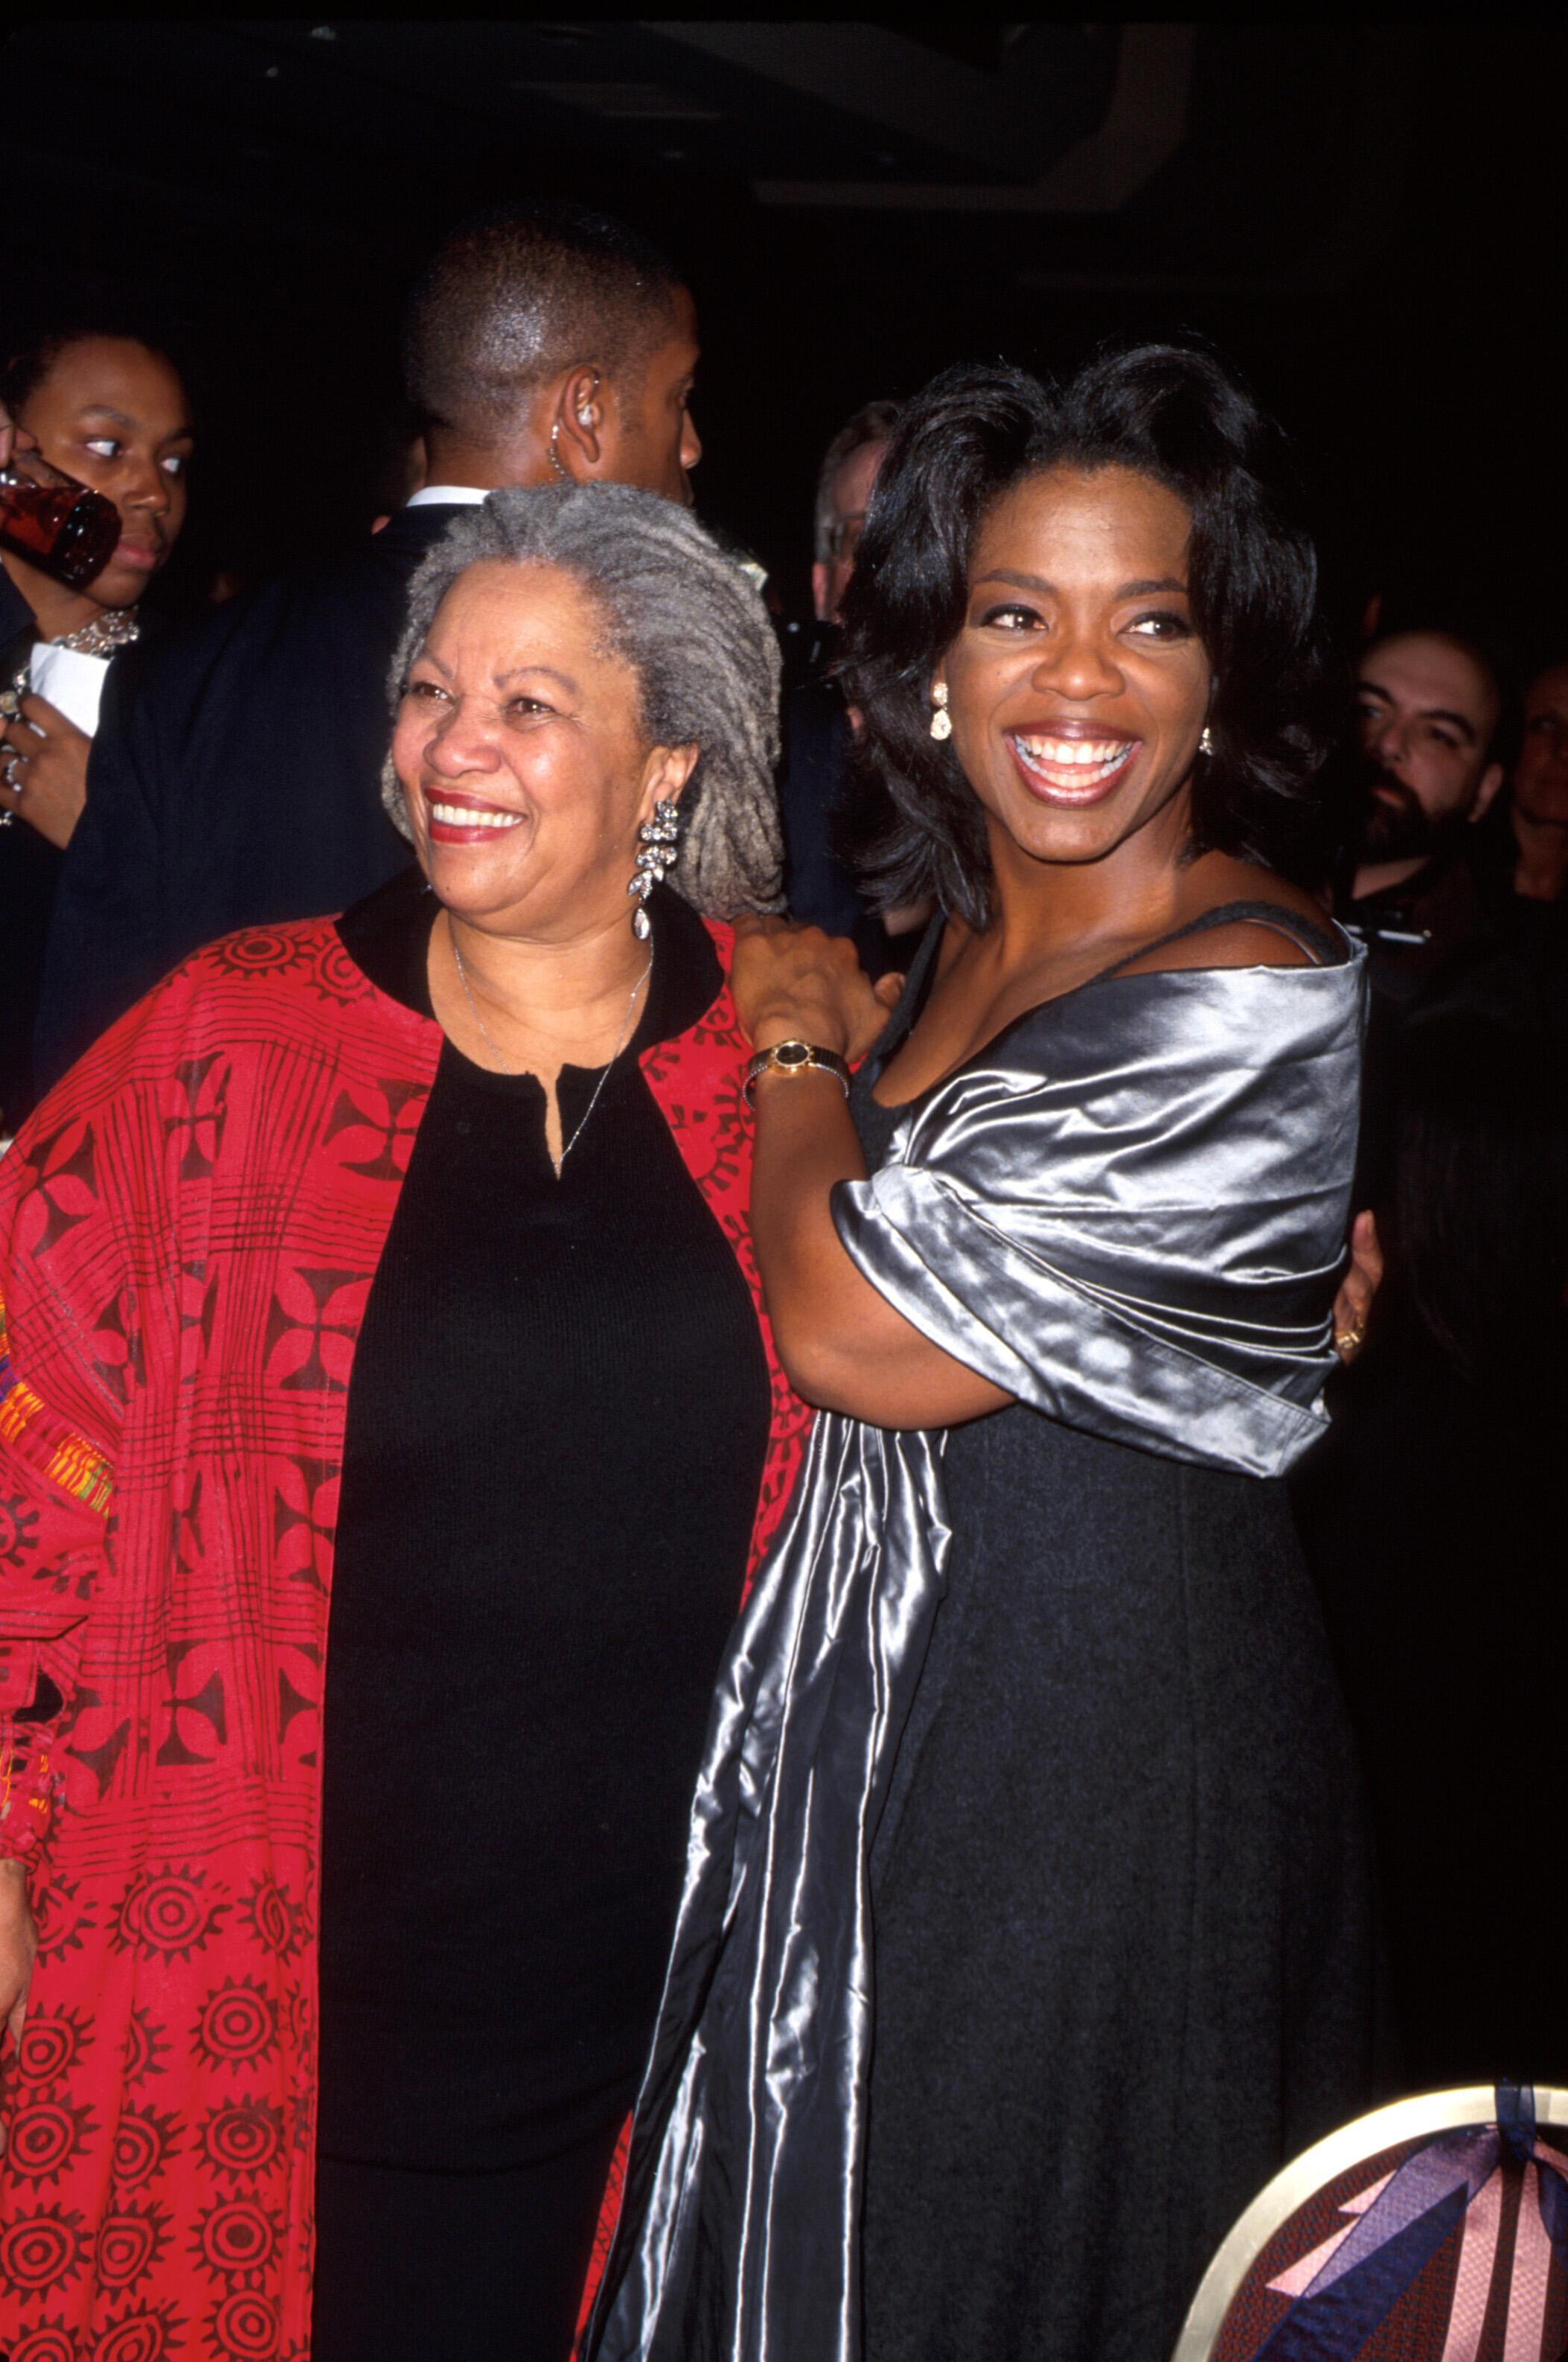 (L-R) Writer Toni Morrison and television personality Oprah Winfrey at film premiere of Winfrey's Beloved, based on Morrison's novel. (Photo by Marion Curtis/DMI/The LIFE Picture Collection via Getty Images)